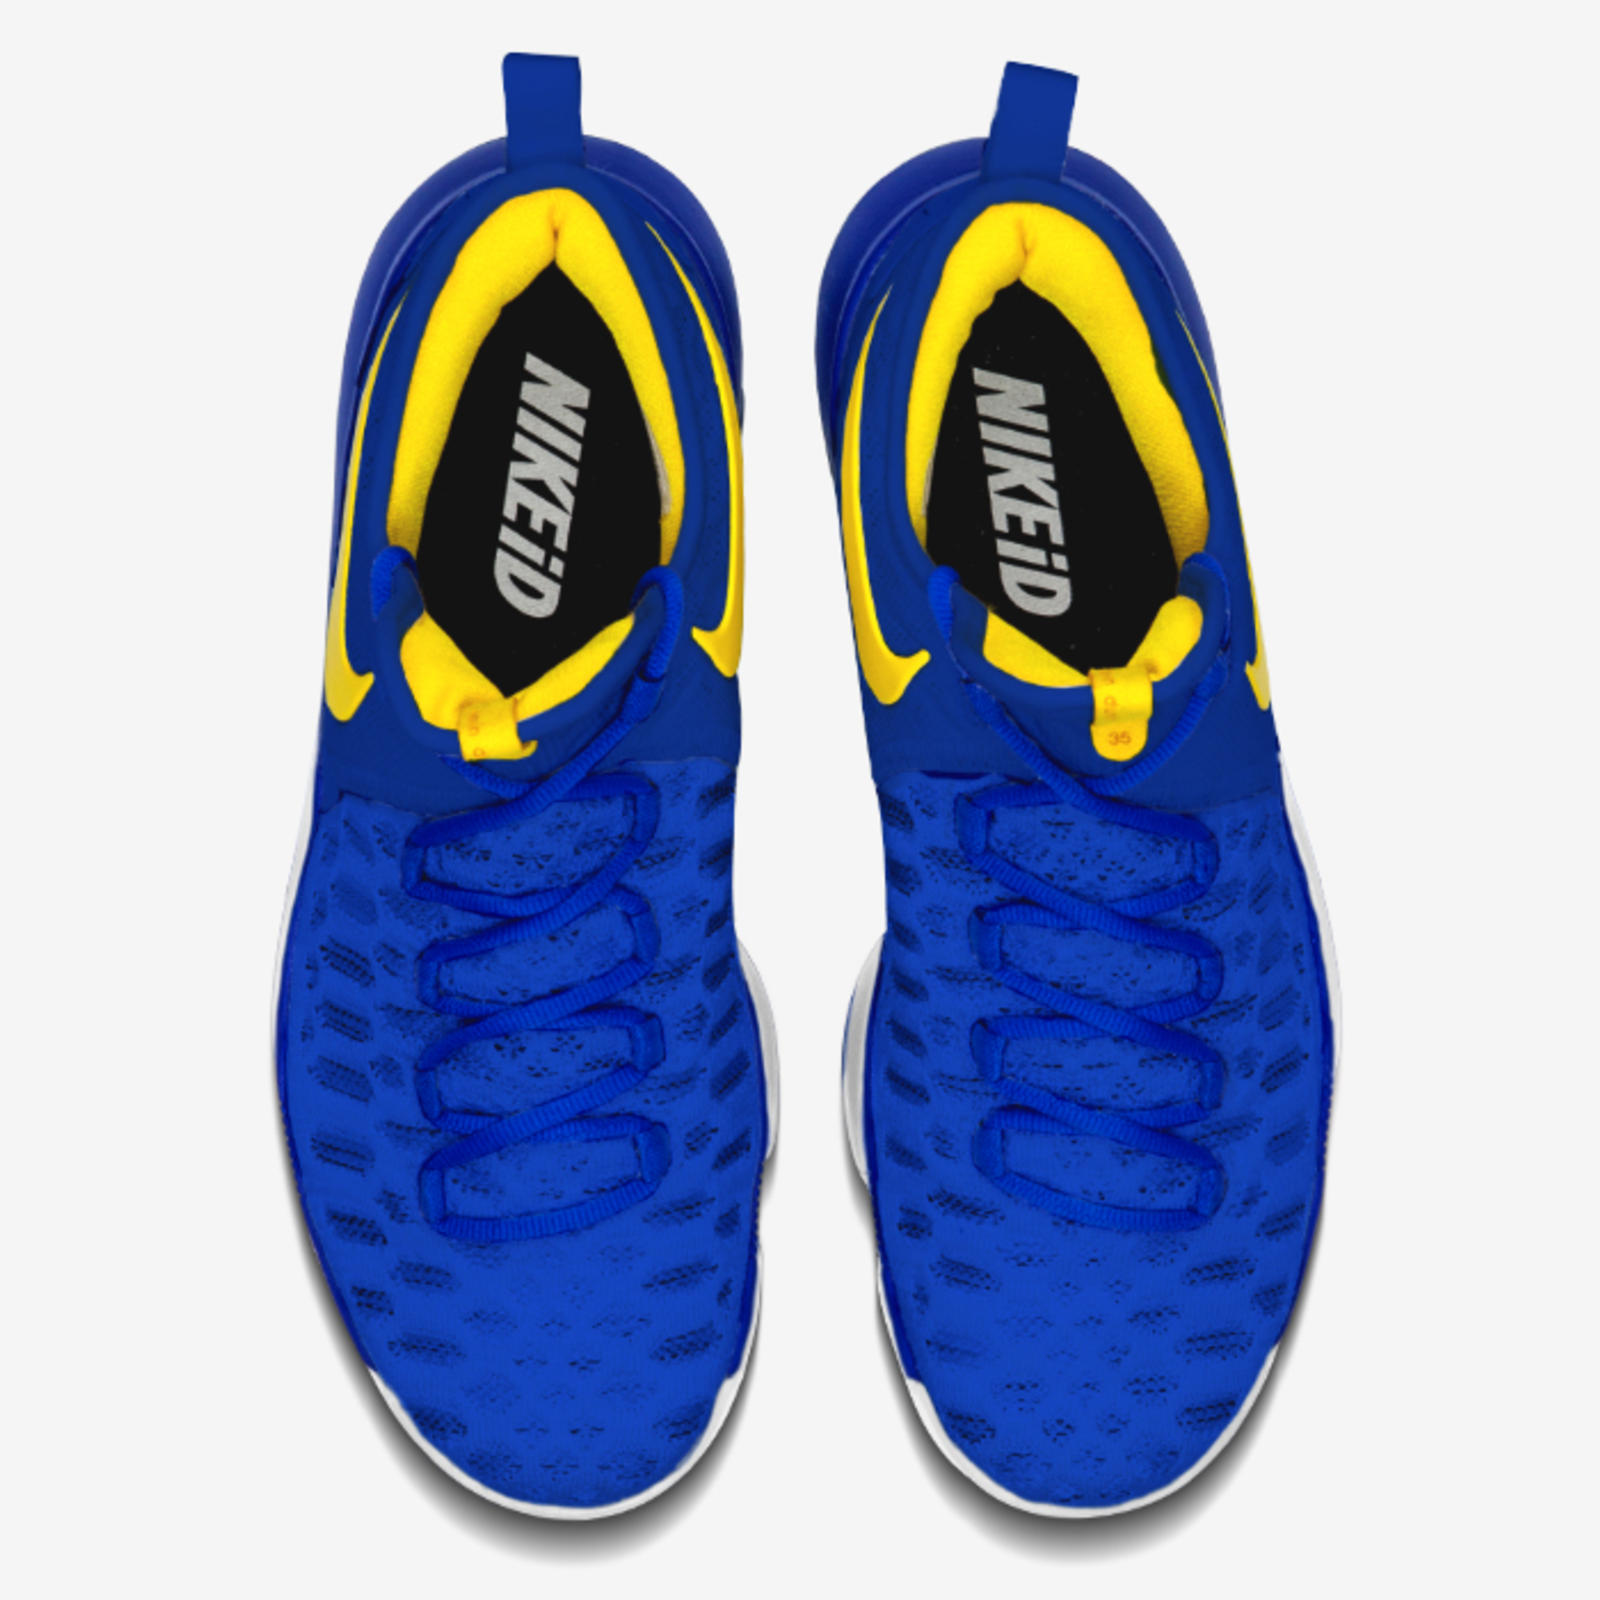 watch 85137 b323c FA16 KD9 Warriors Away Nike-PDP 04 1600x700.  FA16 KD9 Warriors Flyknit Nike-PDP 04 1600x700. The KD9 NIKEiD shoe is available  now ...